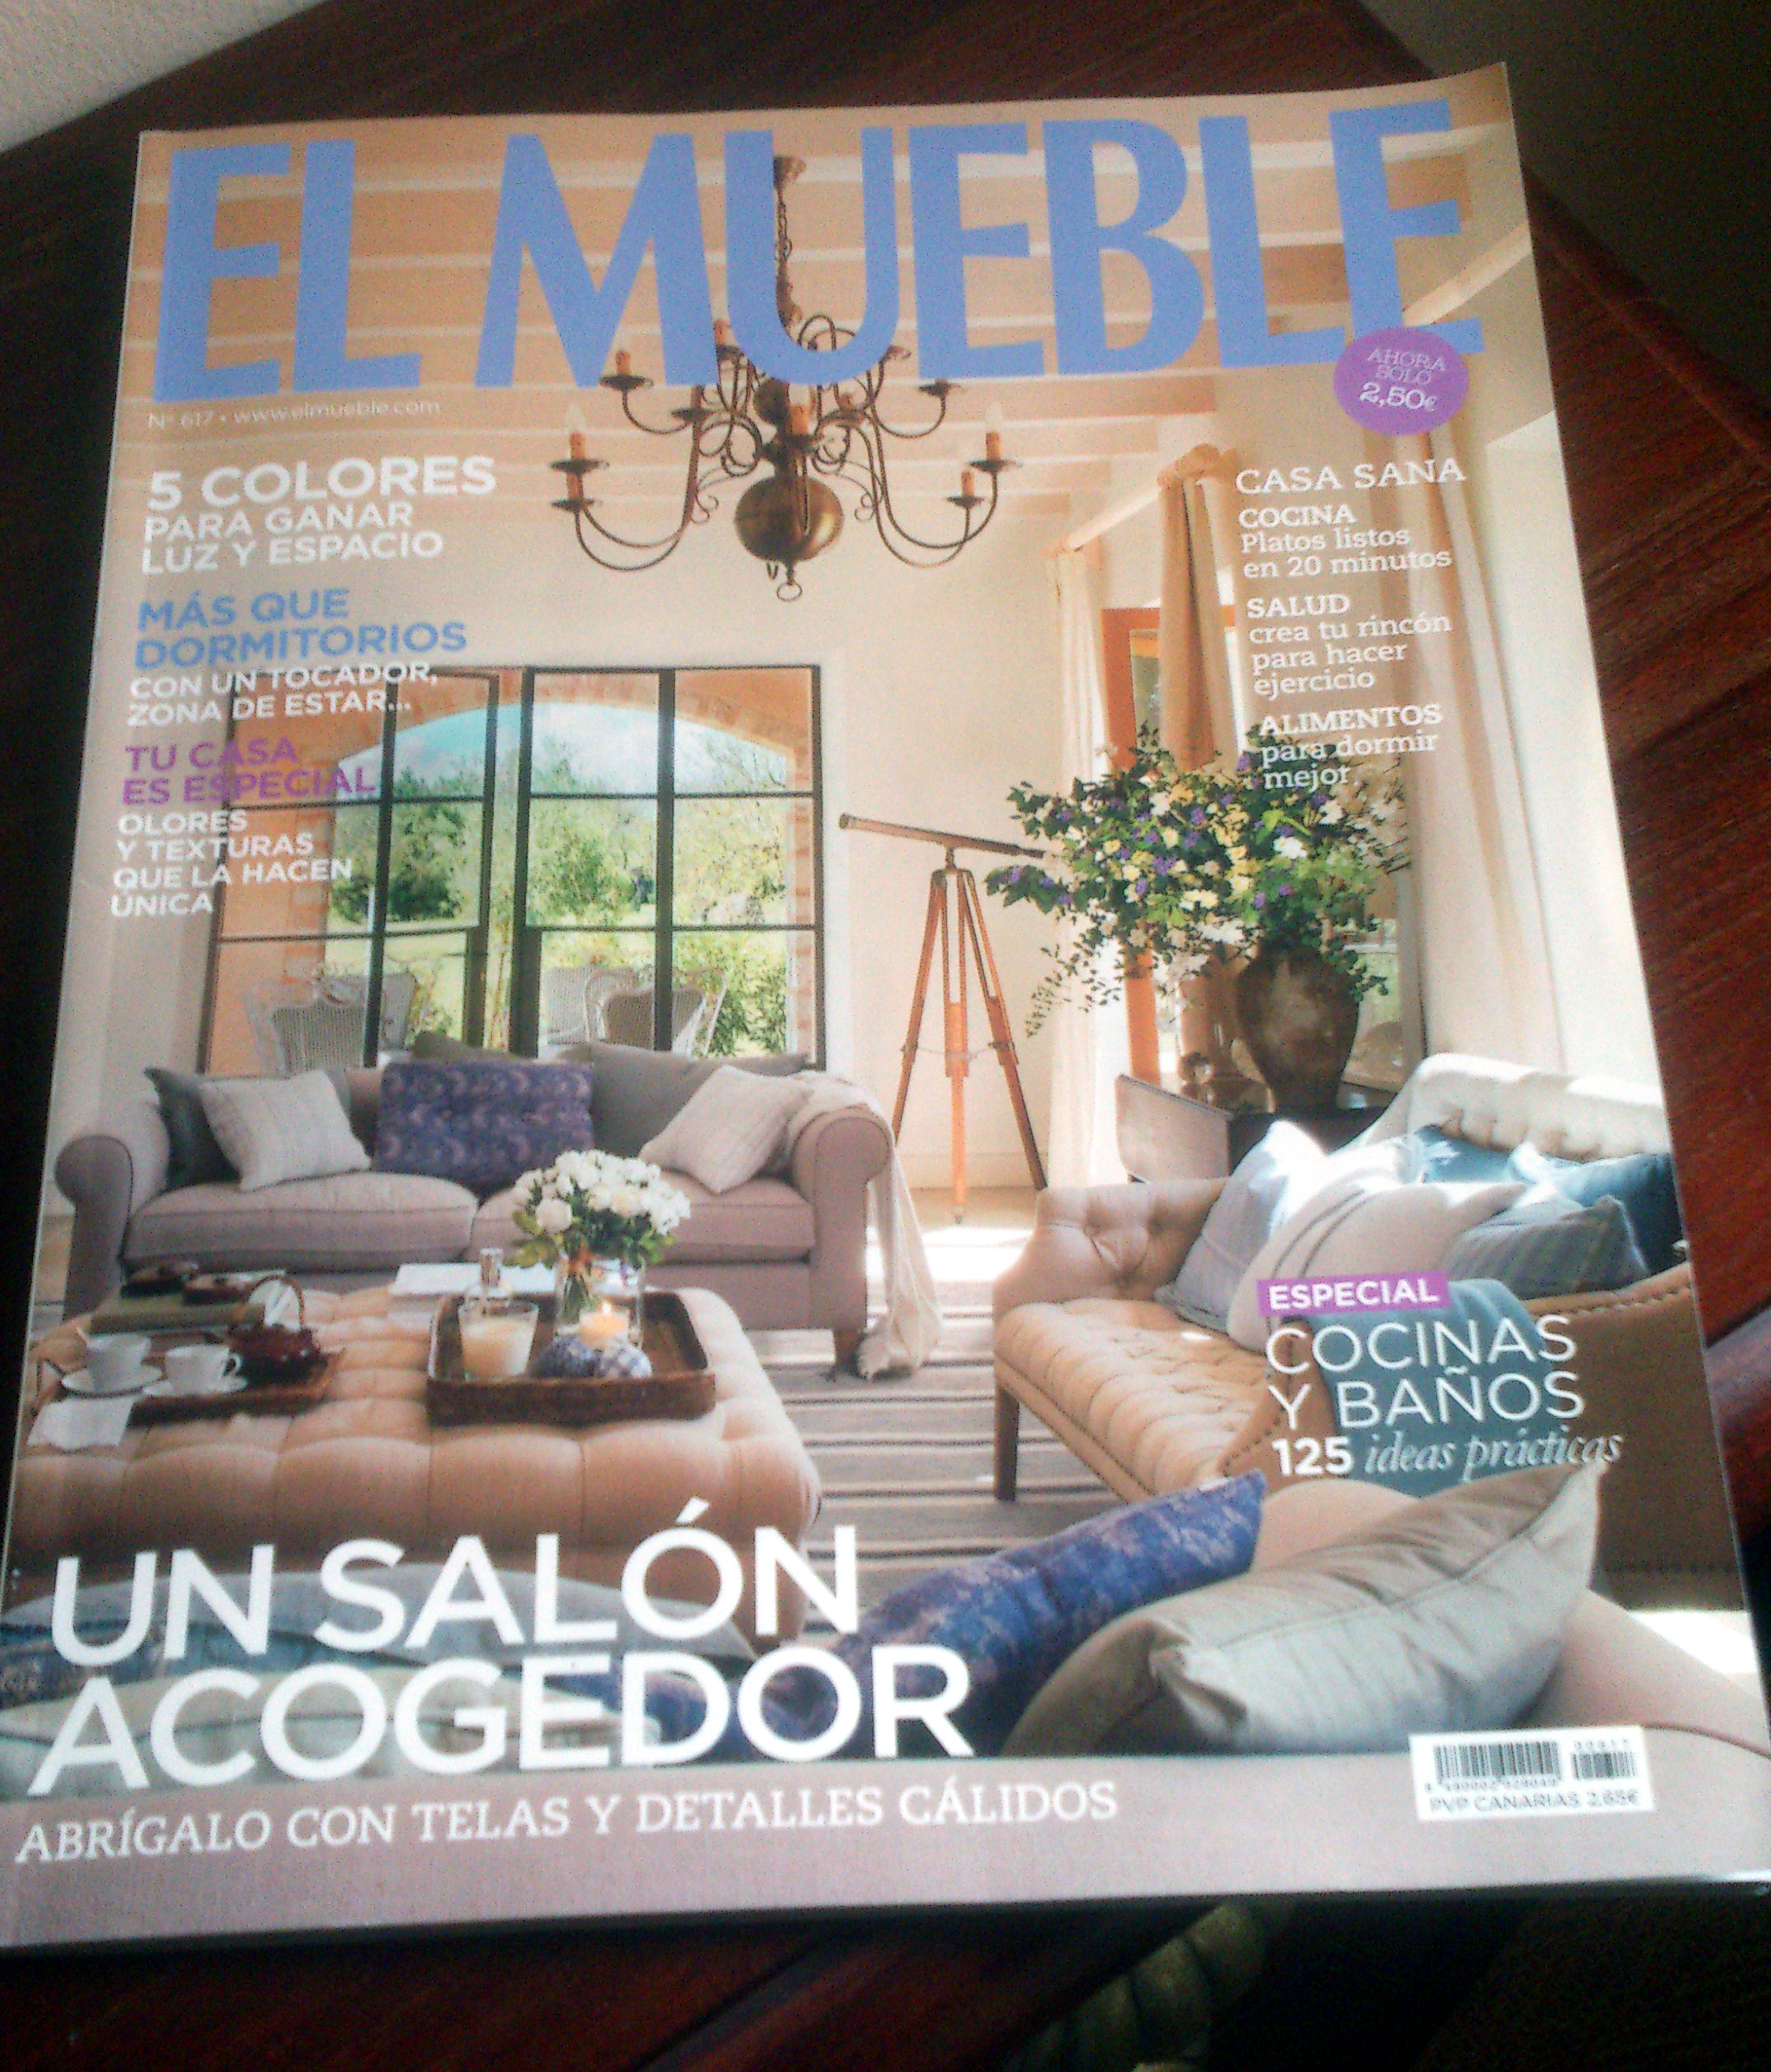 Ba o decoraci n y la revista el mueble n 617 ba o decoraci n for Revista el mueble banos